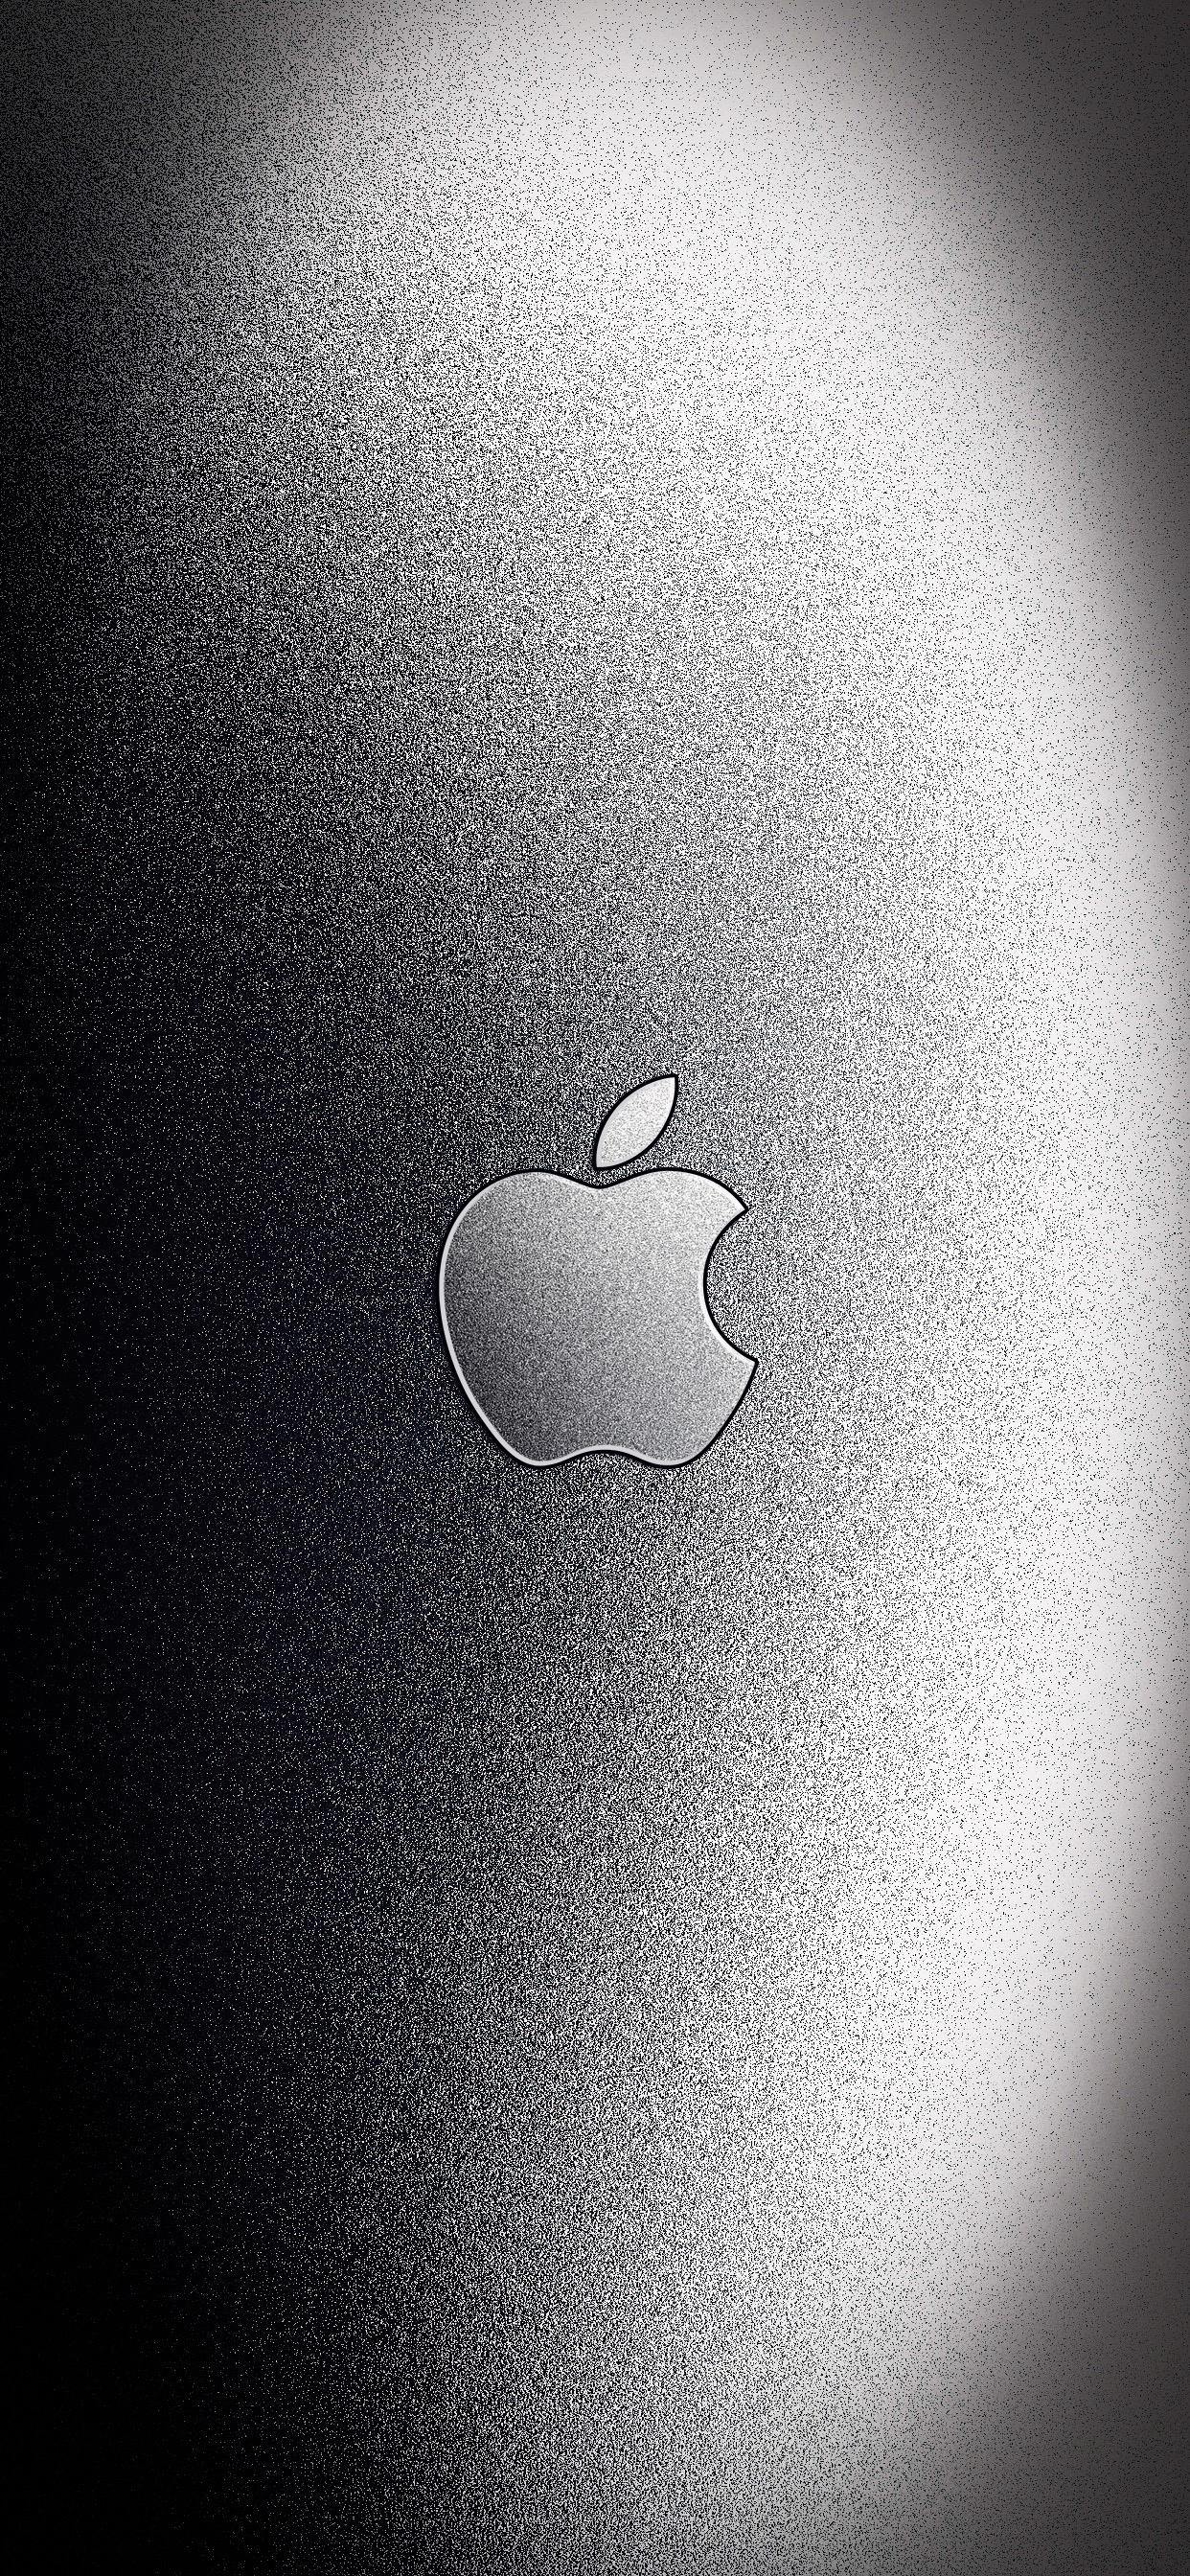 v3 with Apple Logo iPhone XS Max wallpaper ar72014